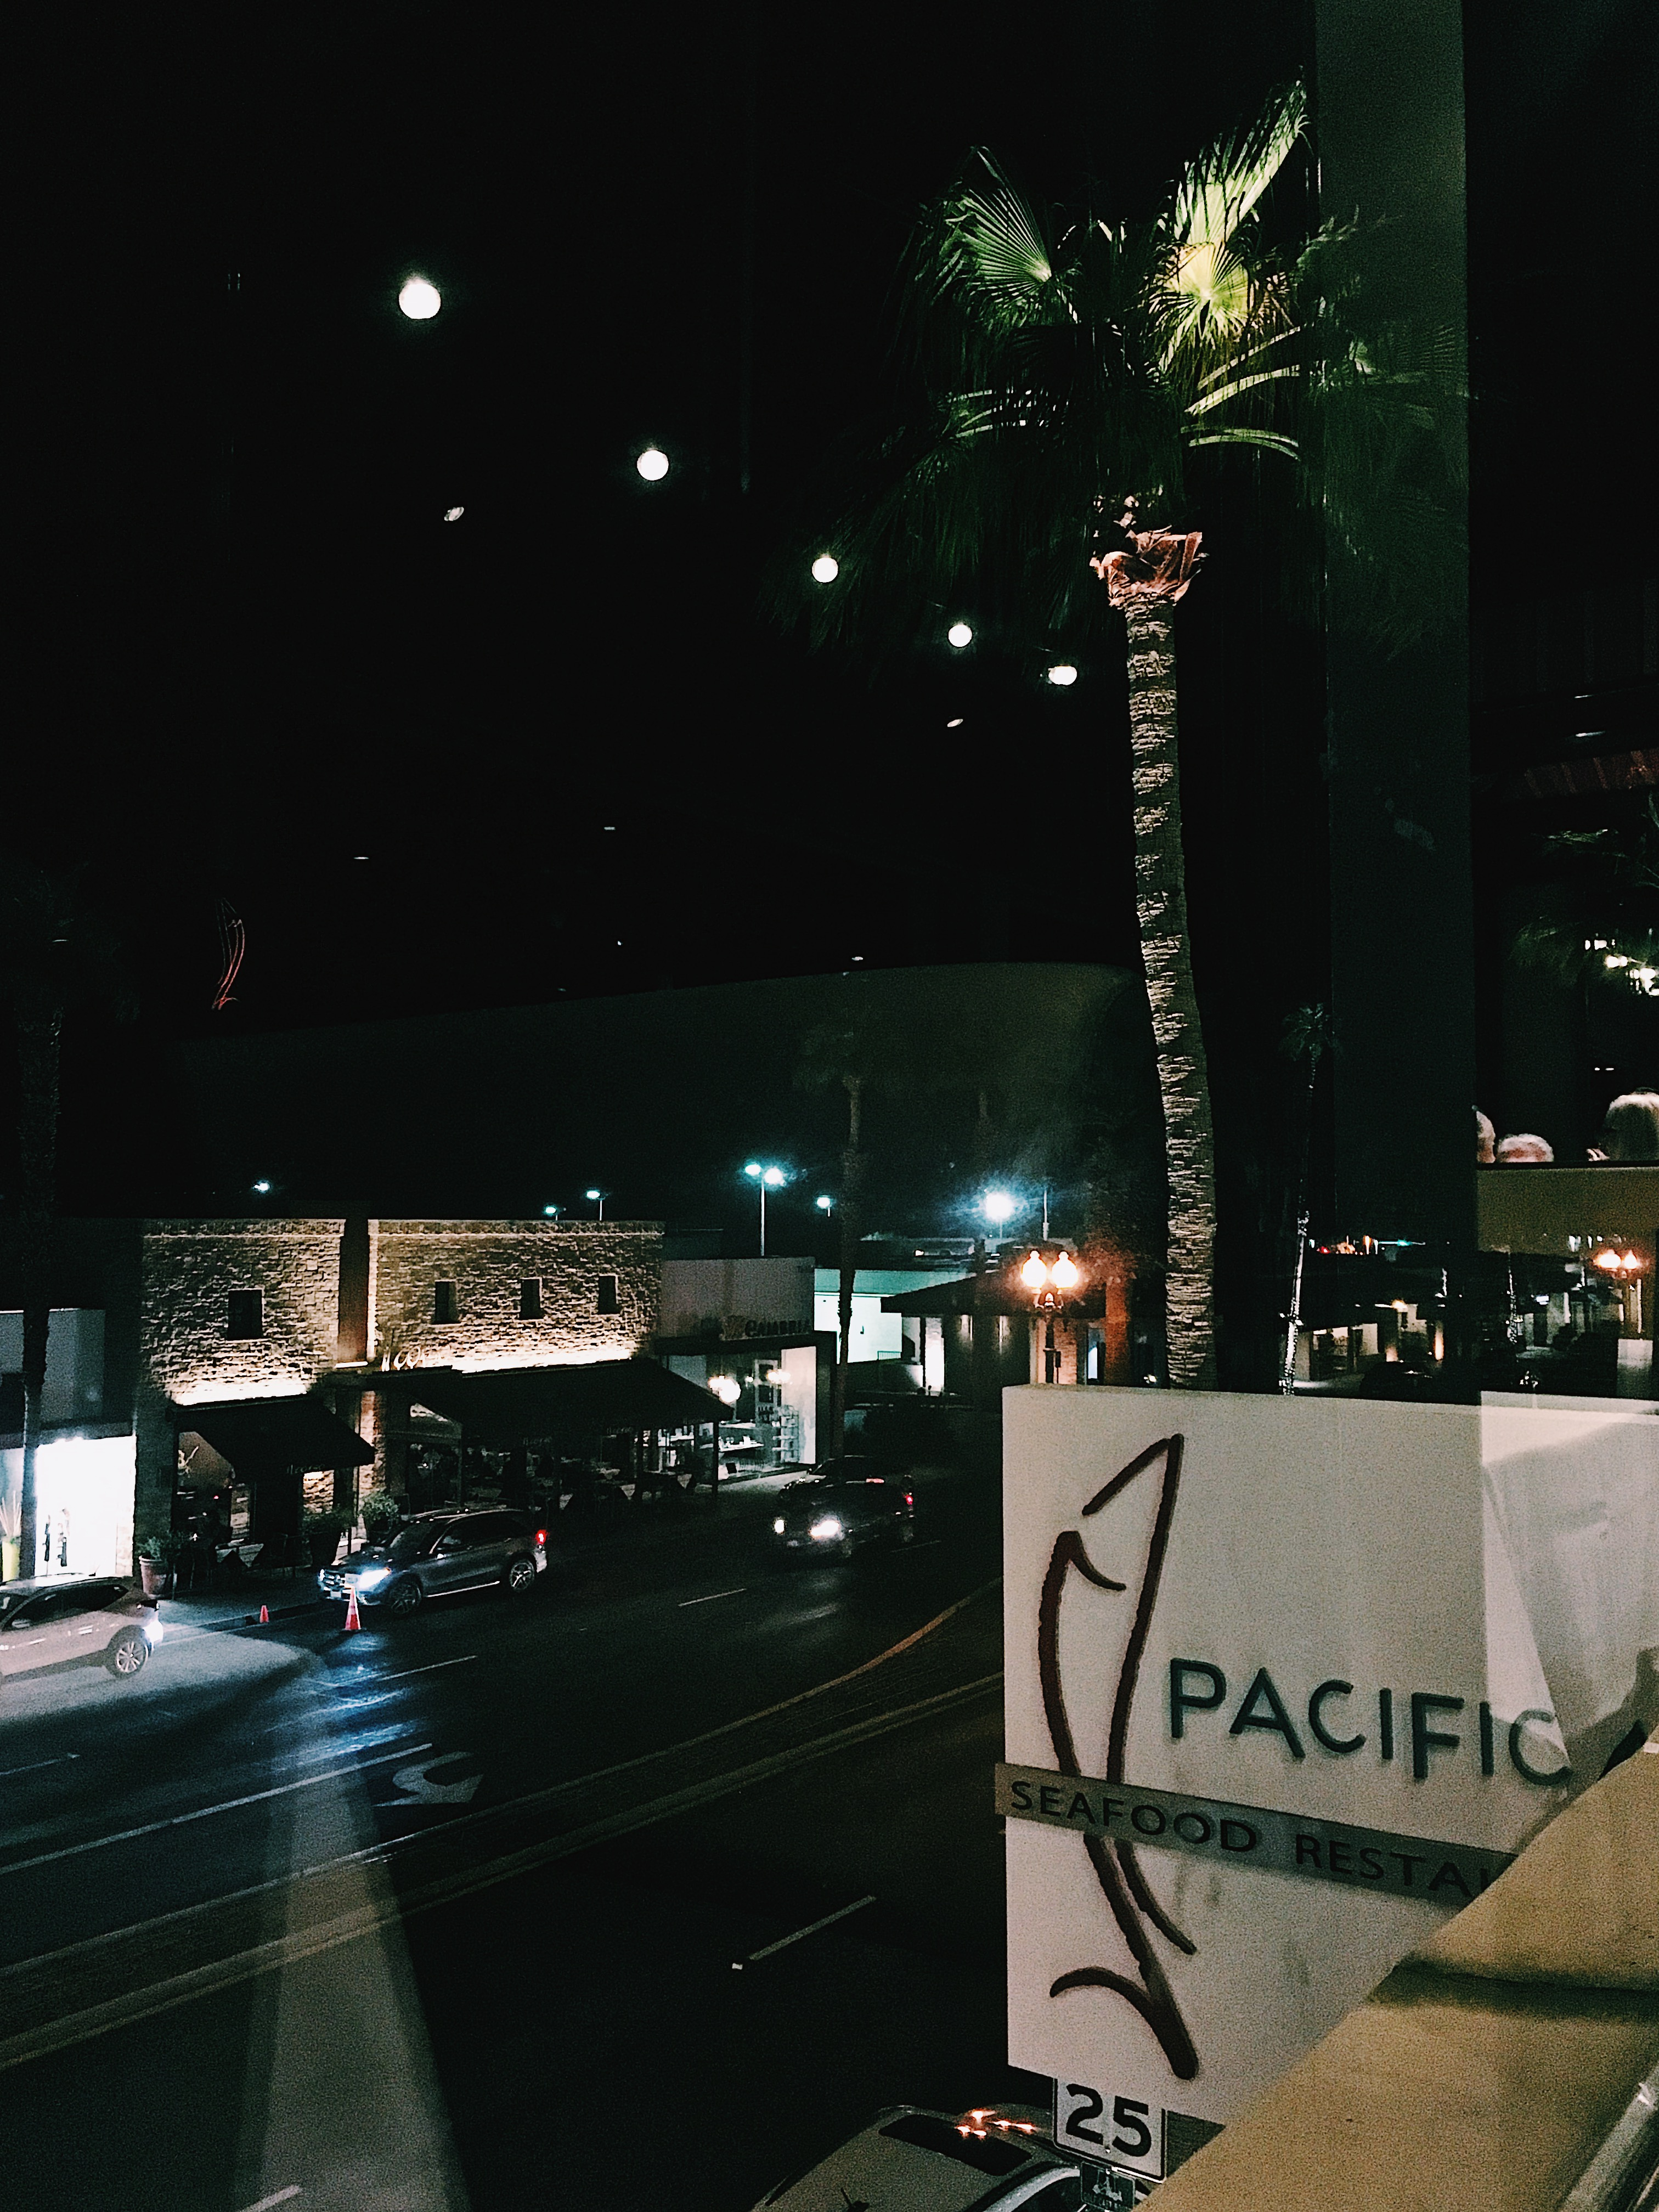 things to do in palm springs-pacifica seafood restaurant